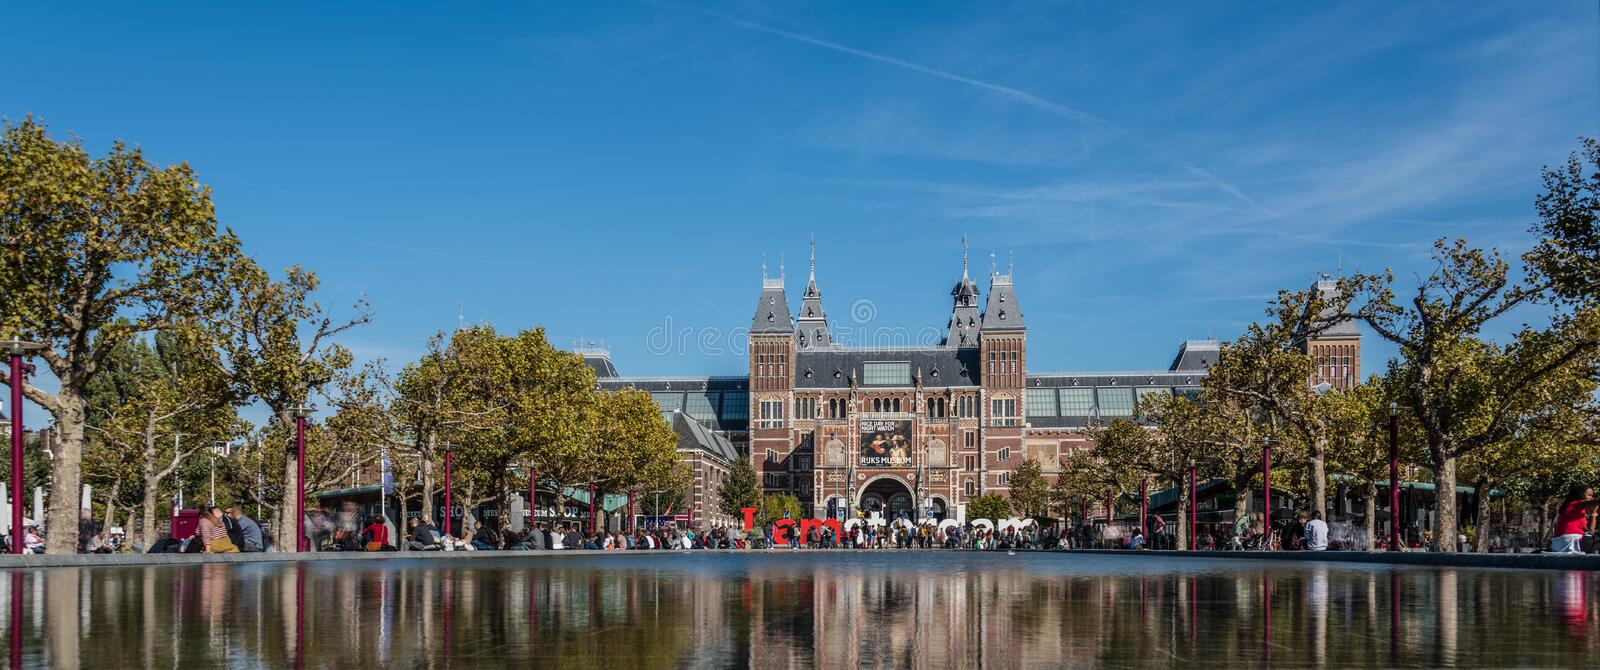 Amsterdam,  Holland, August 2019, Rijksmuseum shot at low angle reflecting in the water in the pond in front of the I Amsterdam stock photography